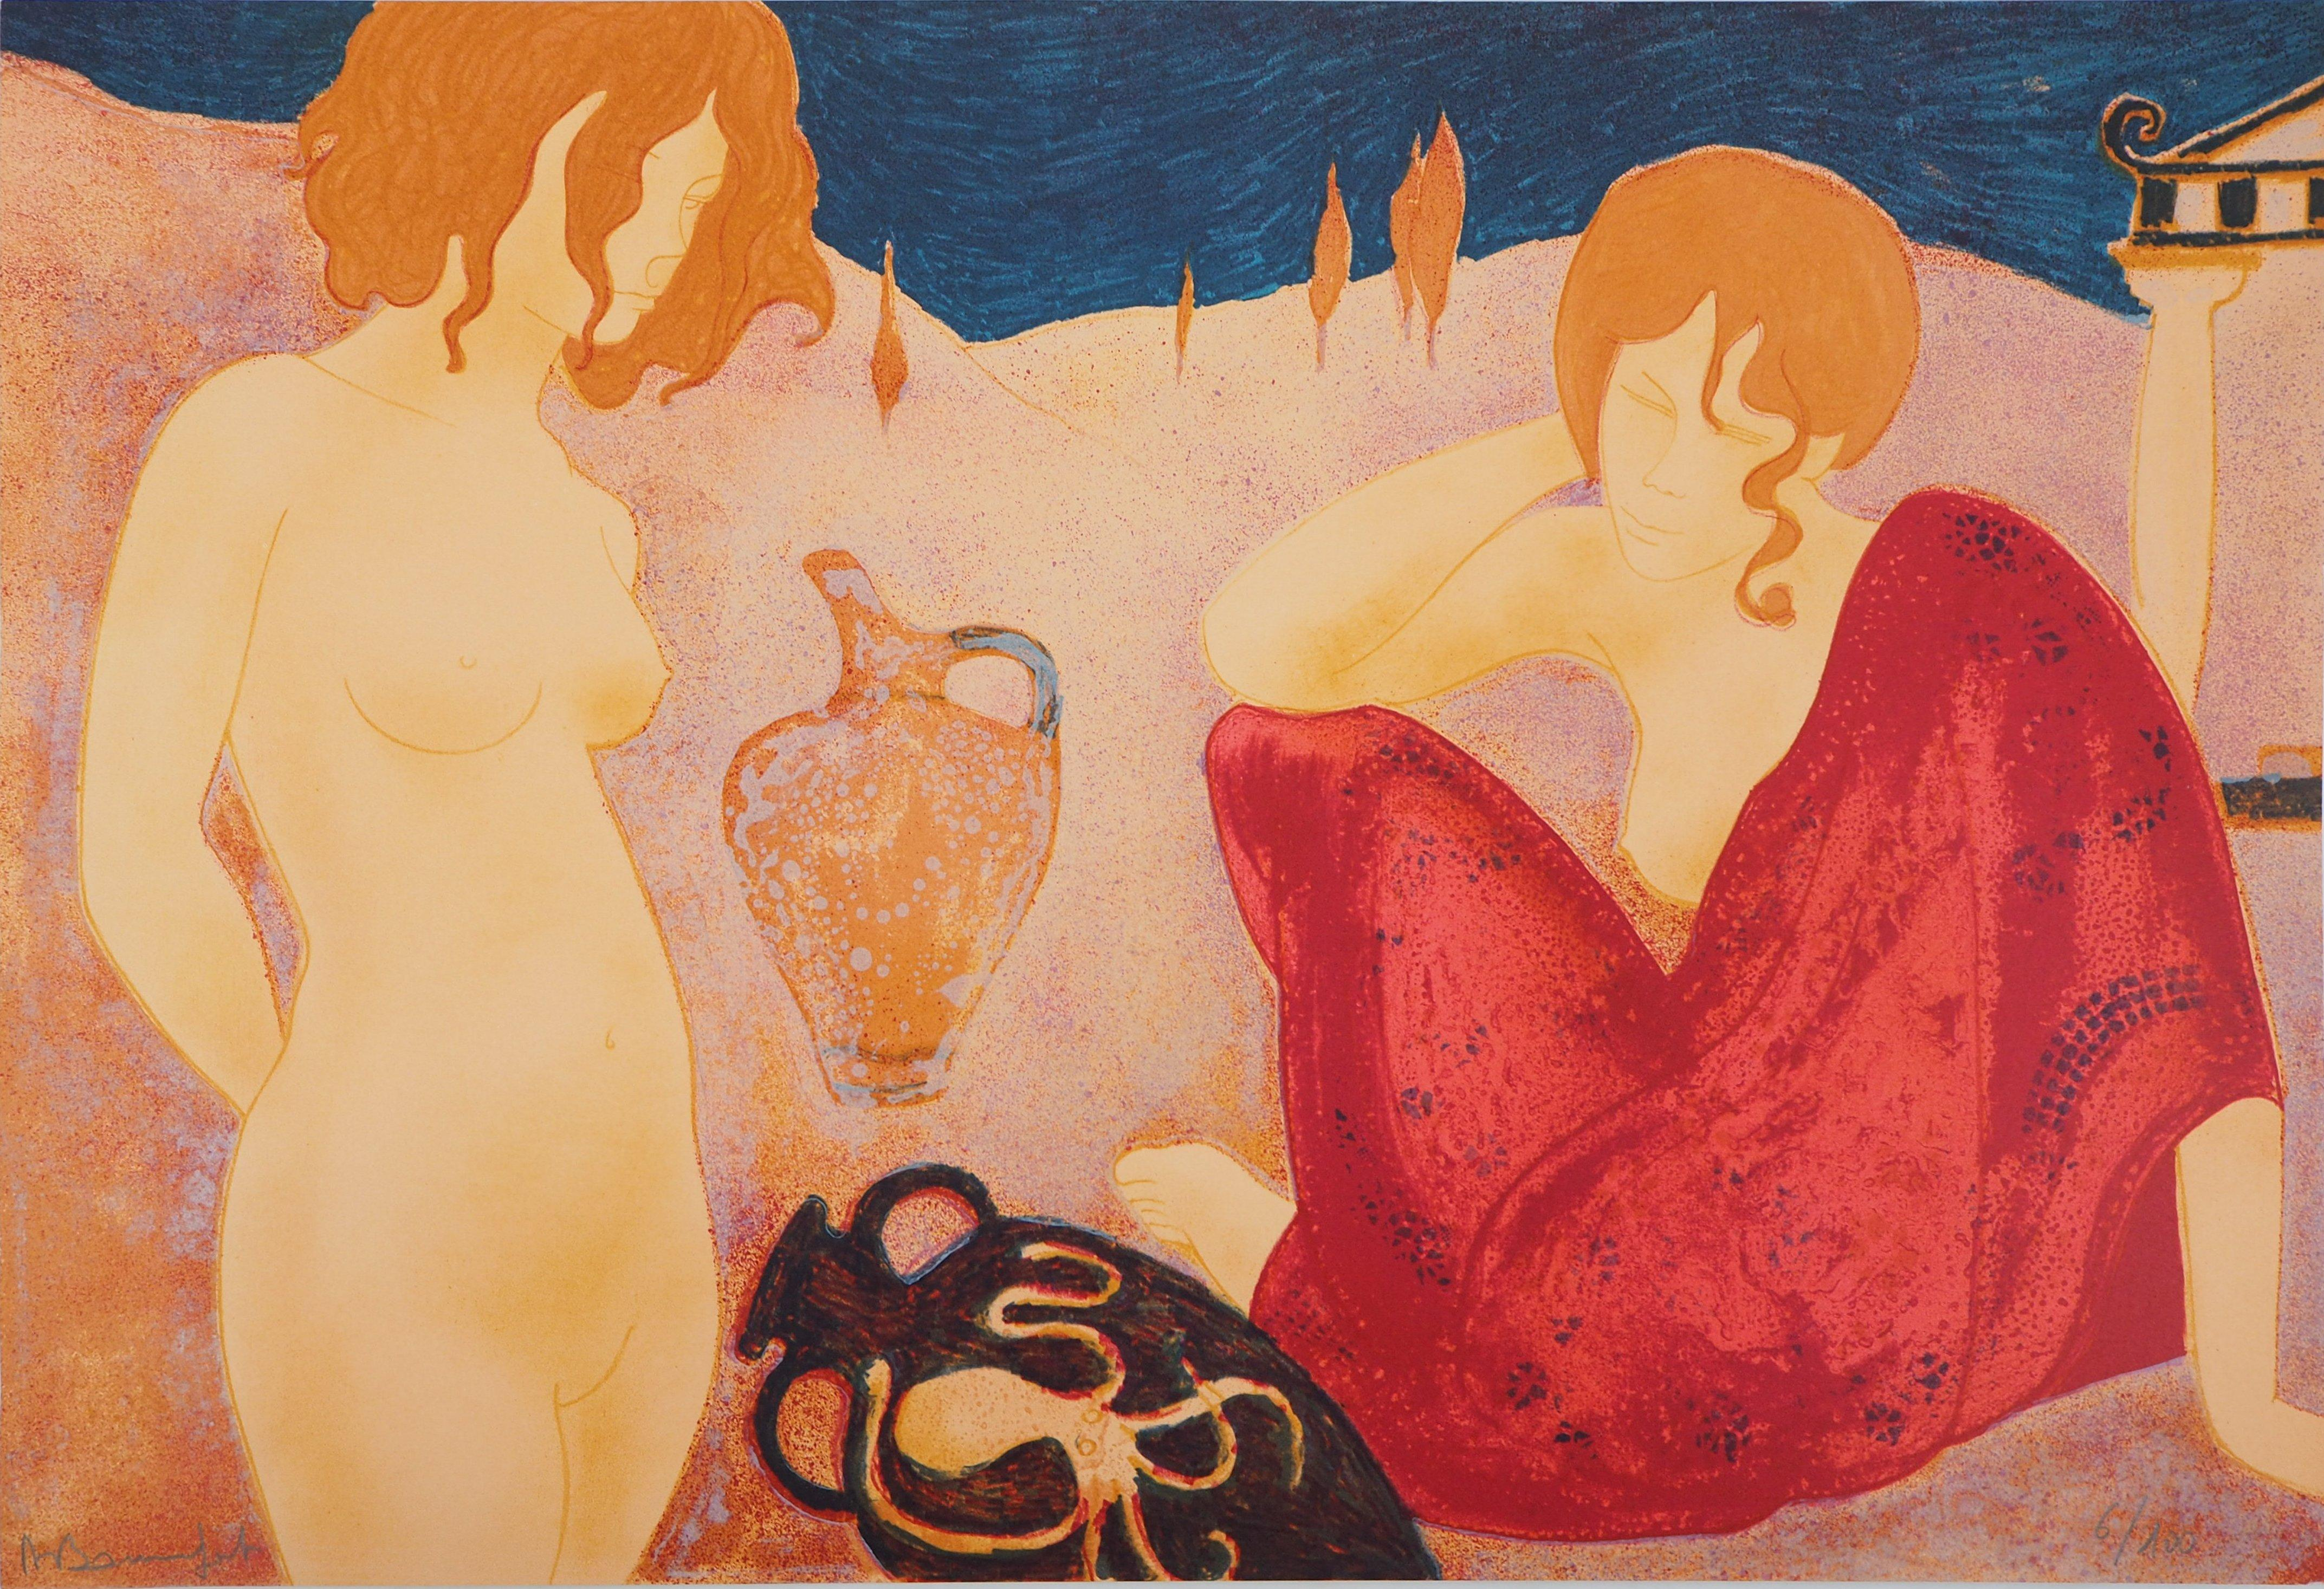 Two Greek Beauties - Original lithograph, Handsigned and Numbered /100